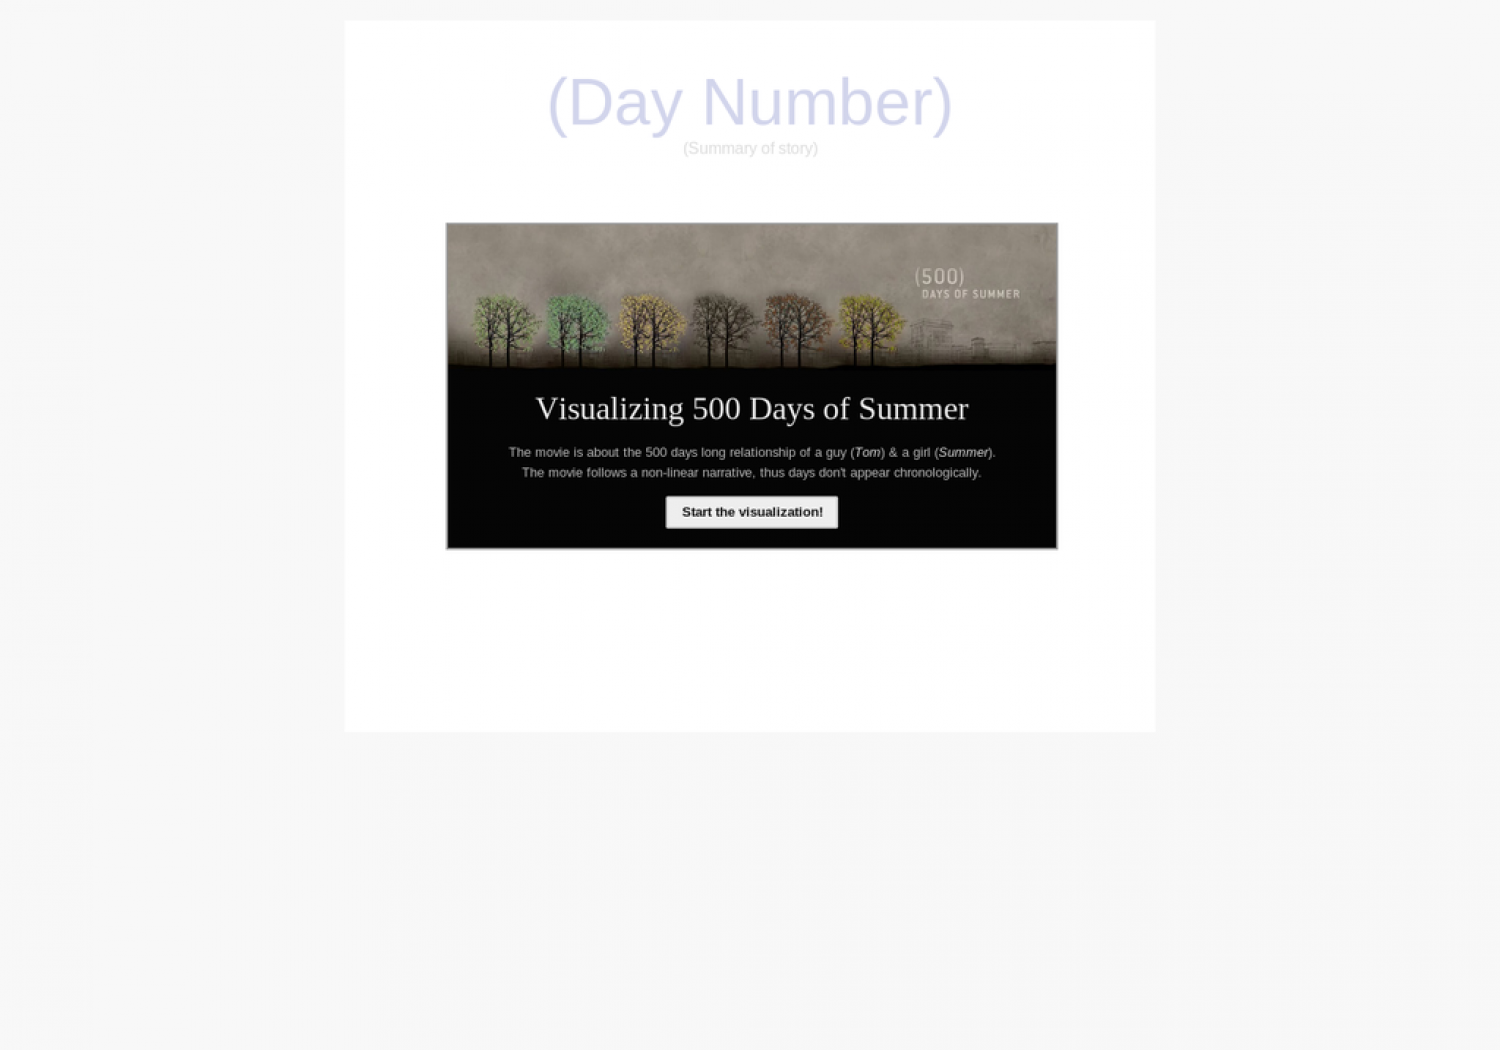 Visualizing 500 Days of Summer Infographic